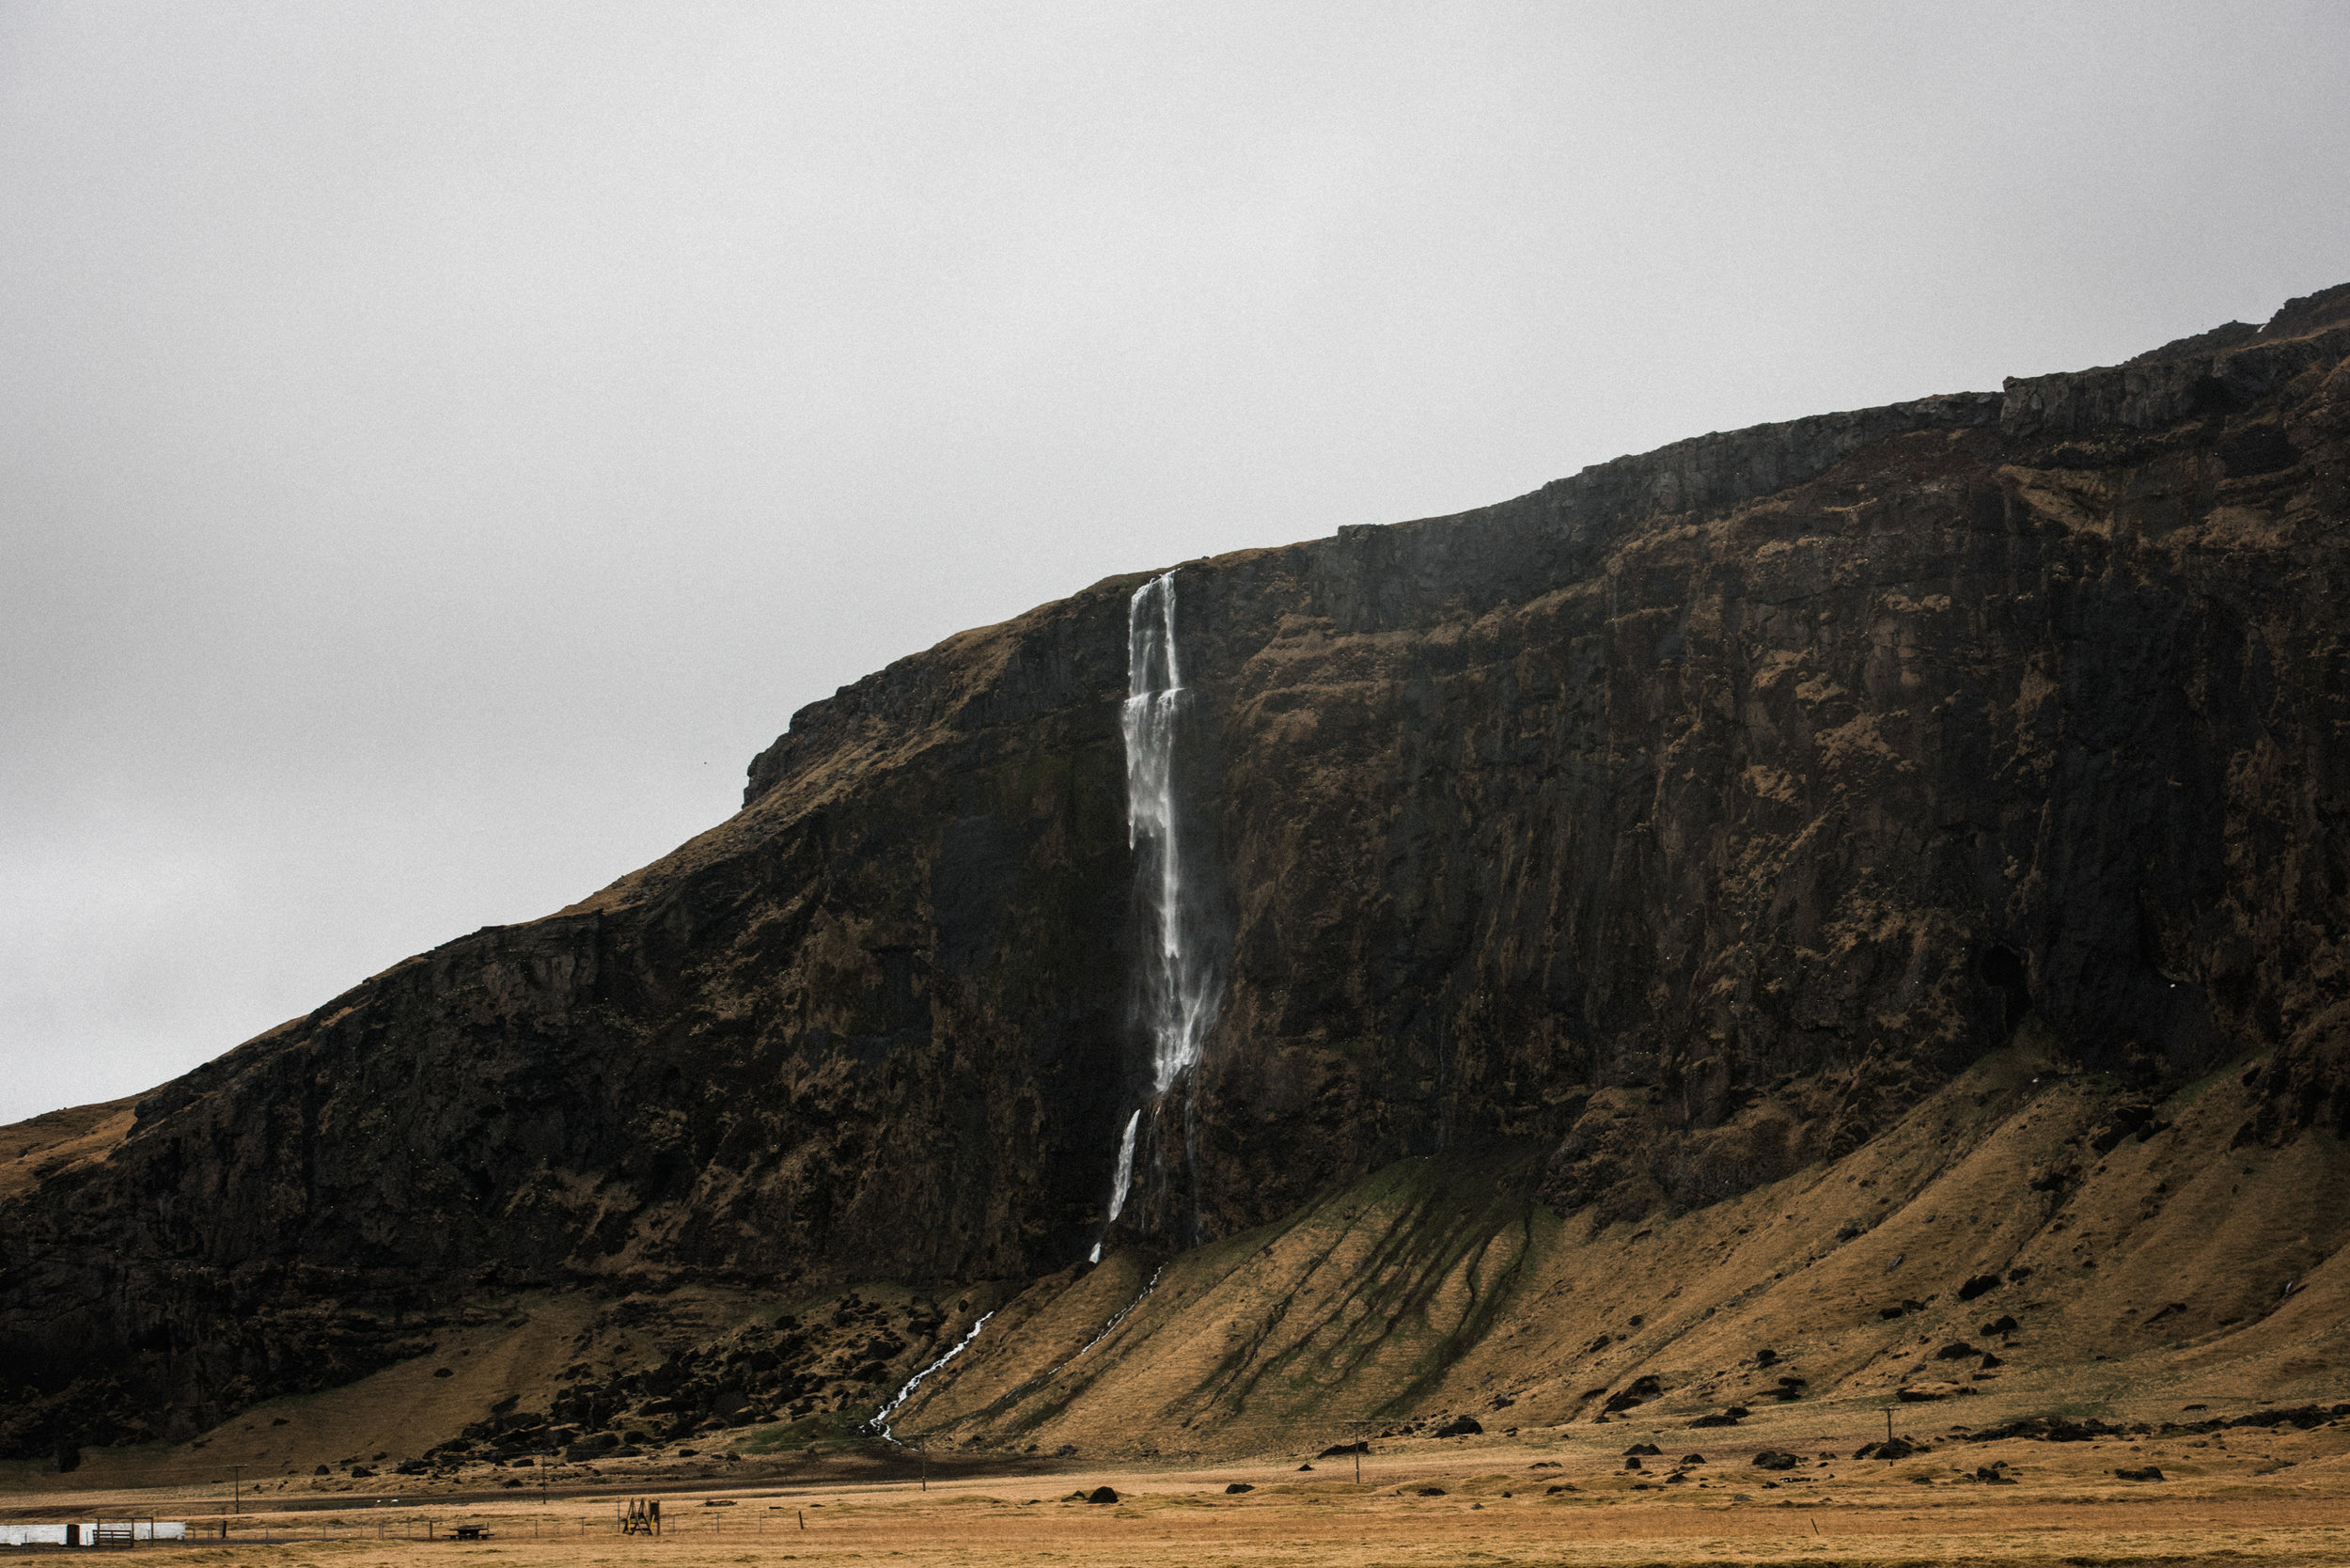 ICELAND_WOMAN_PHOTOGRAPHER_TARASHUPE_OUTDOOR_PHOTOGRAPHY_011.jpg